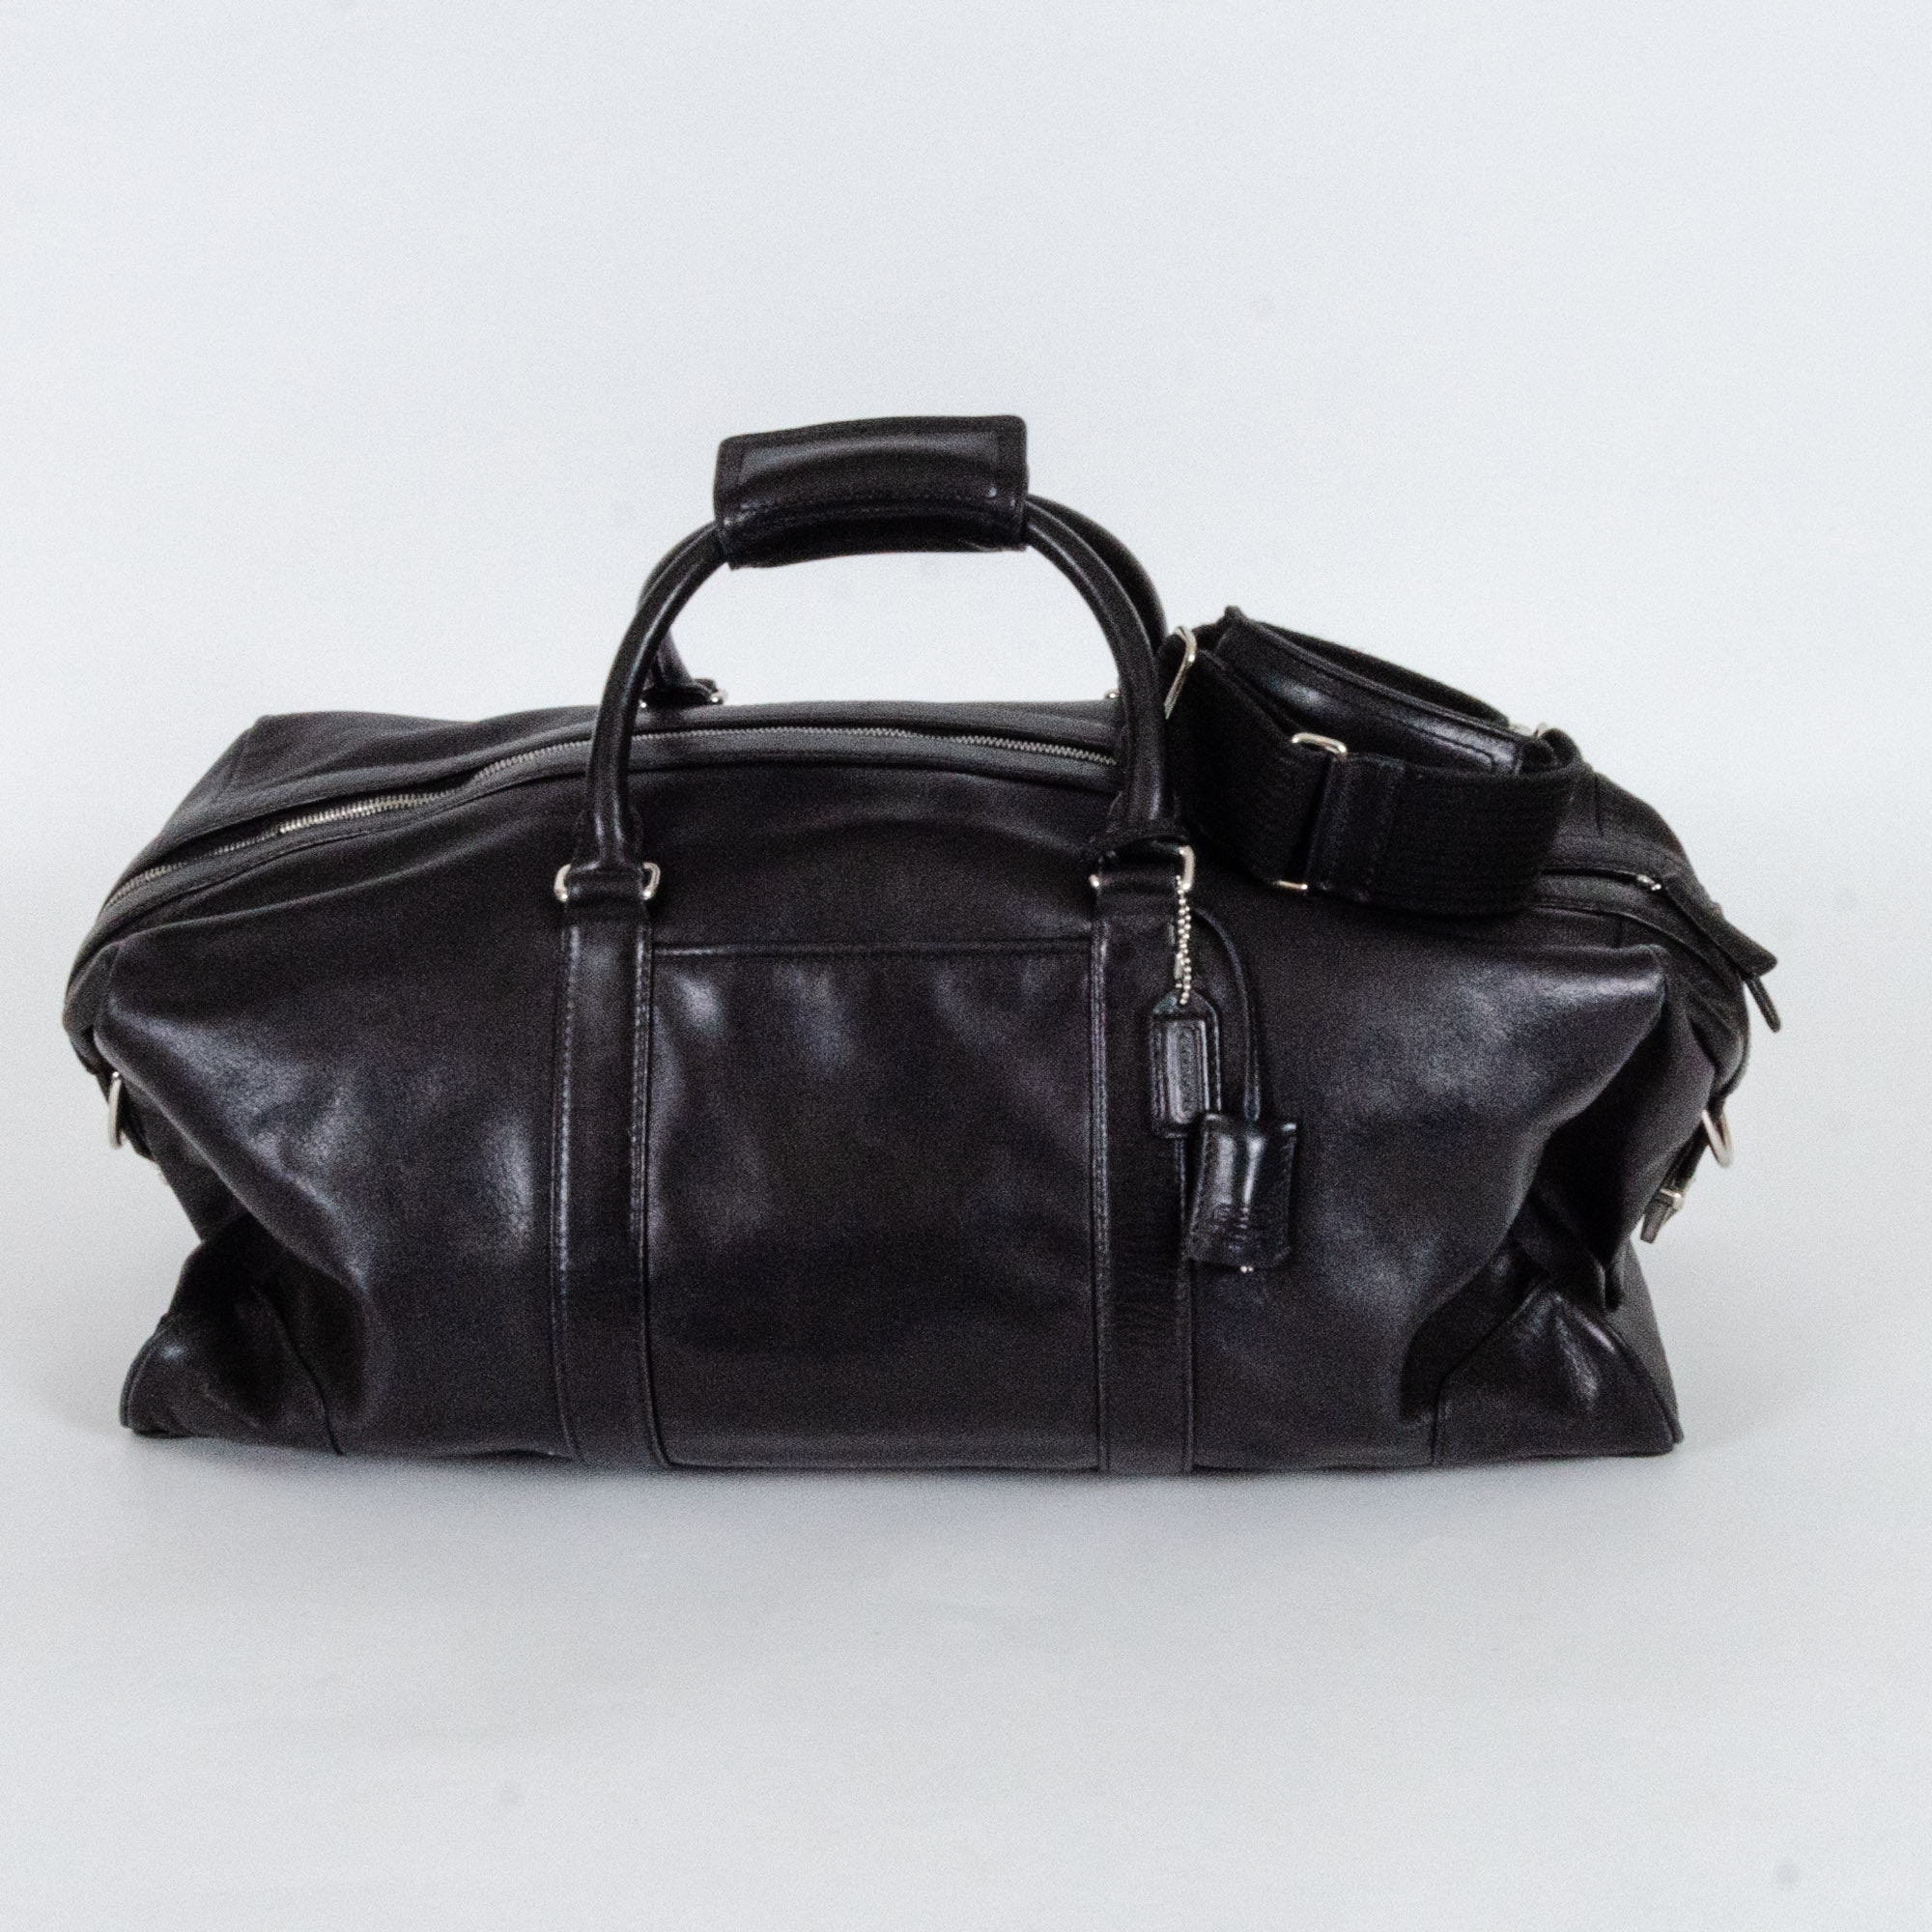 Coach Black Leather Duffel Bag